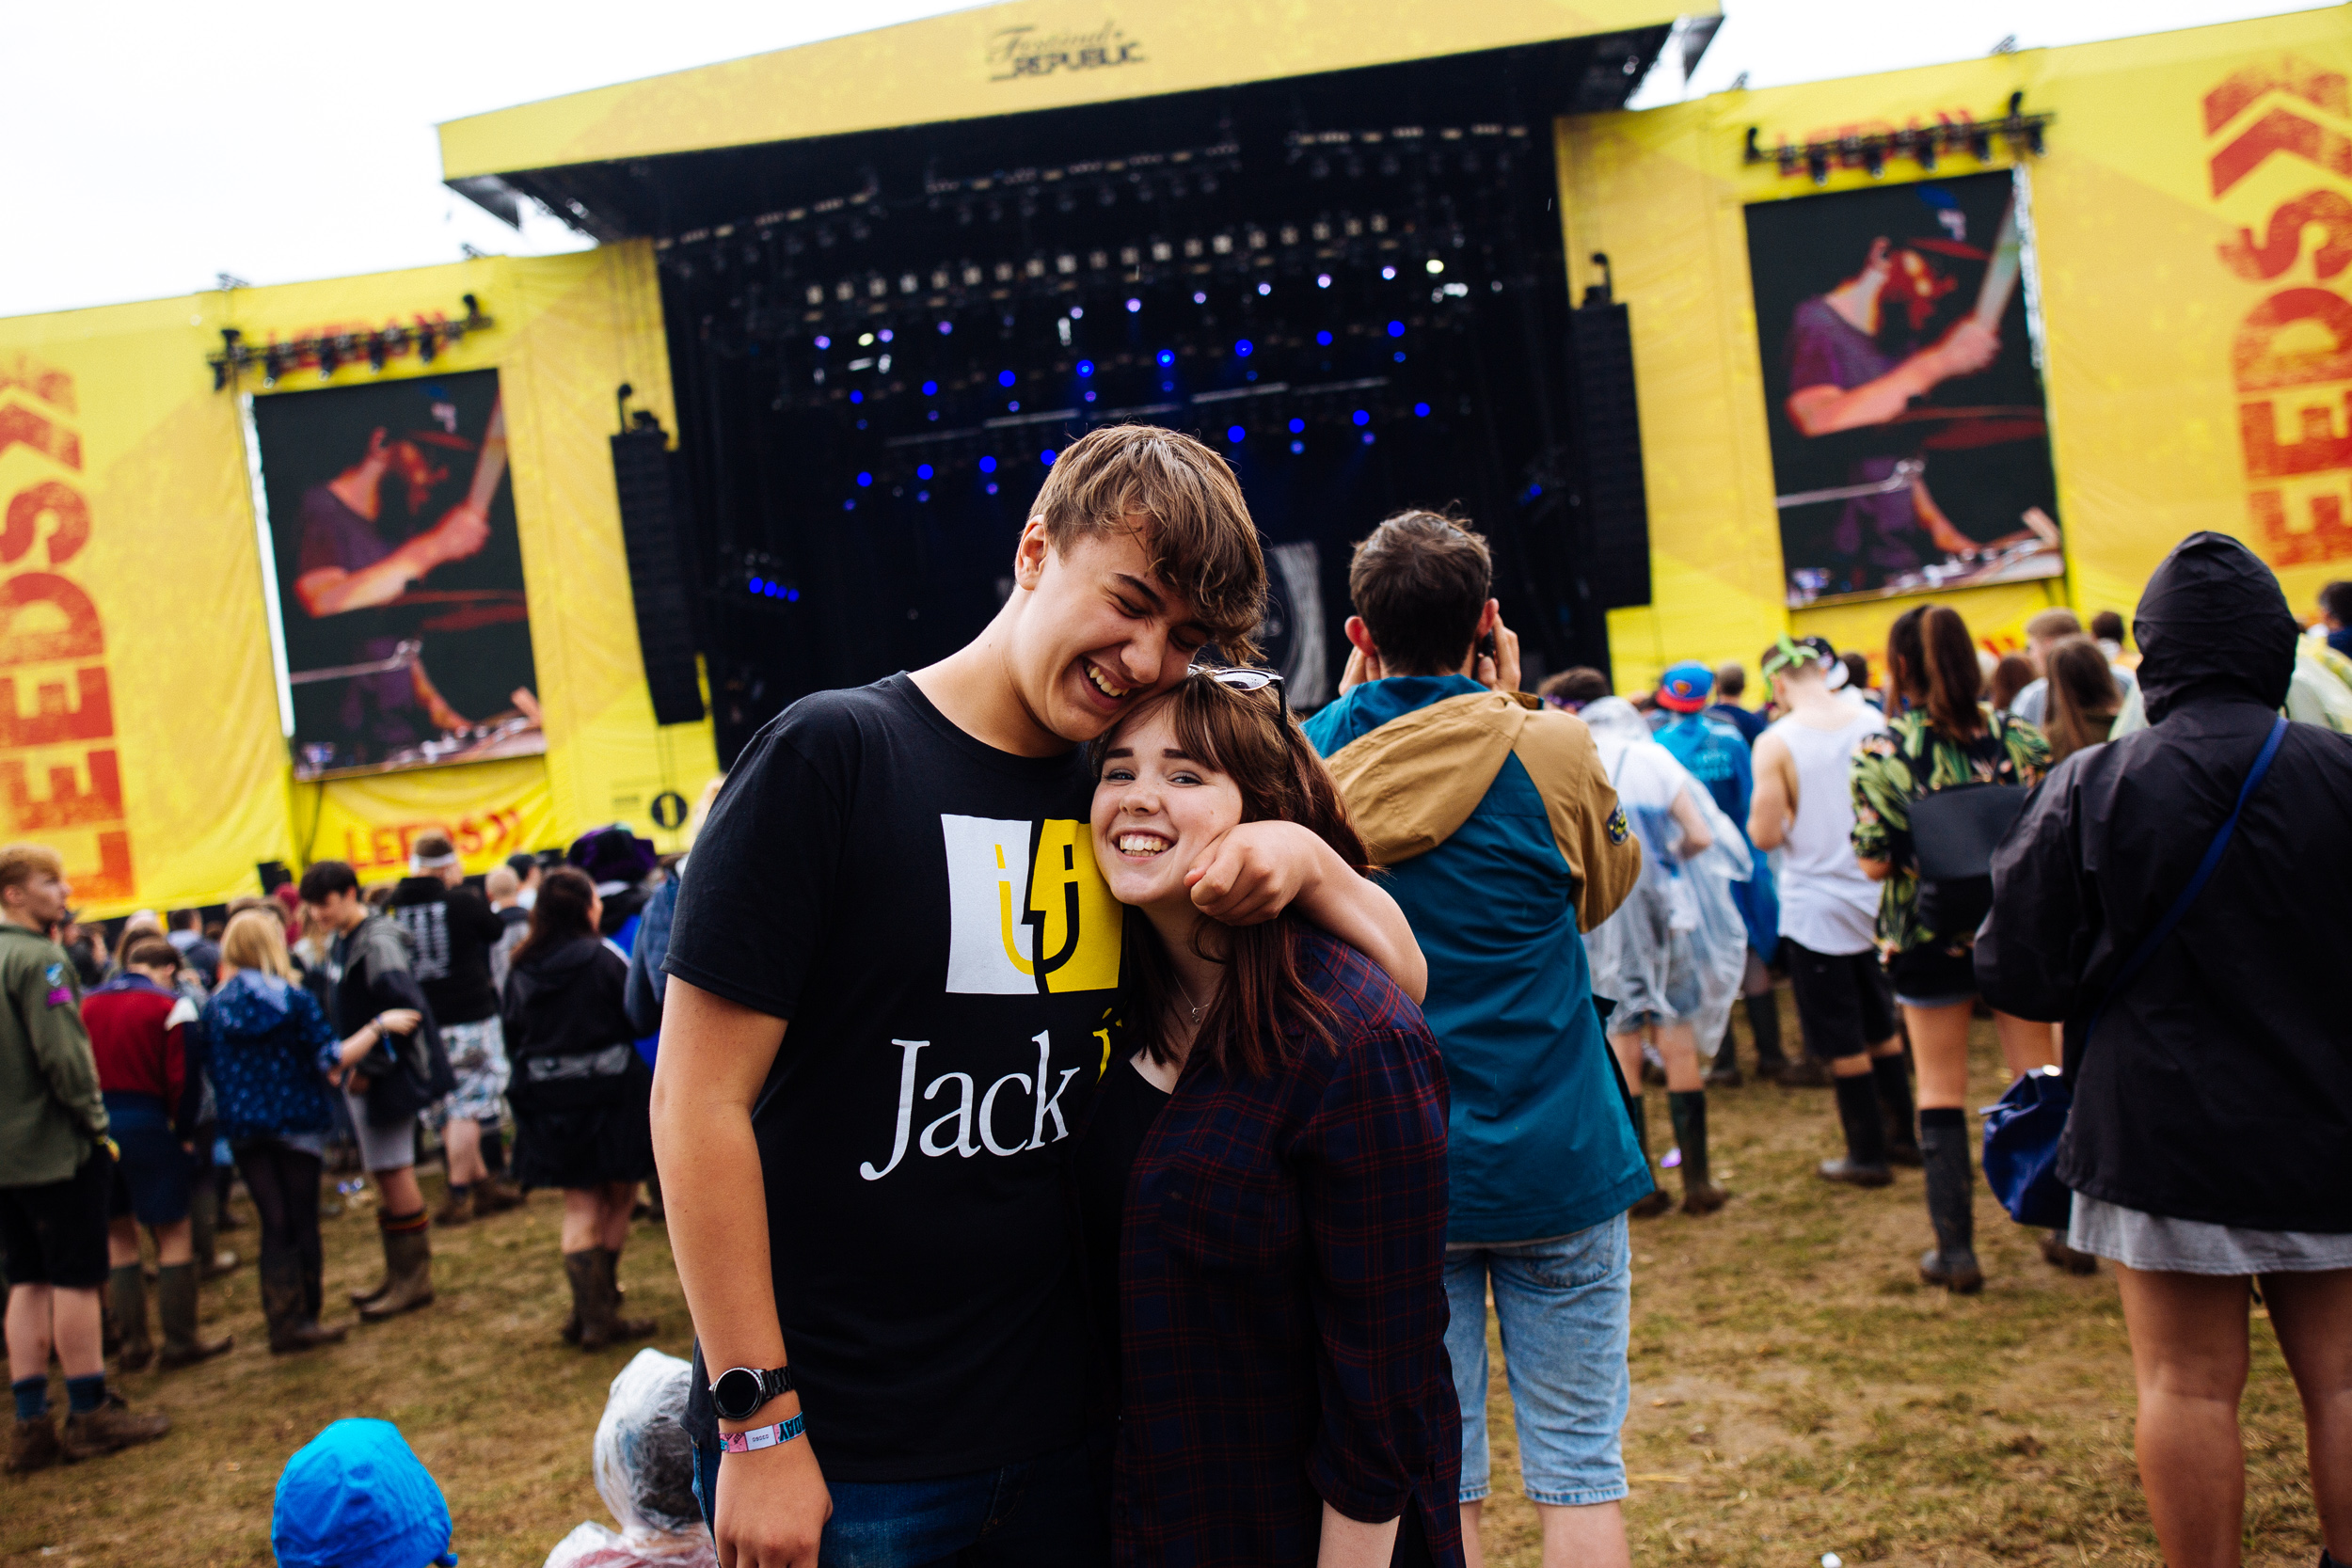 Met some cool people at Leeds Festival